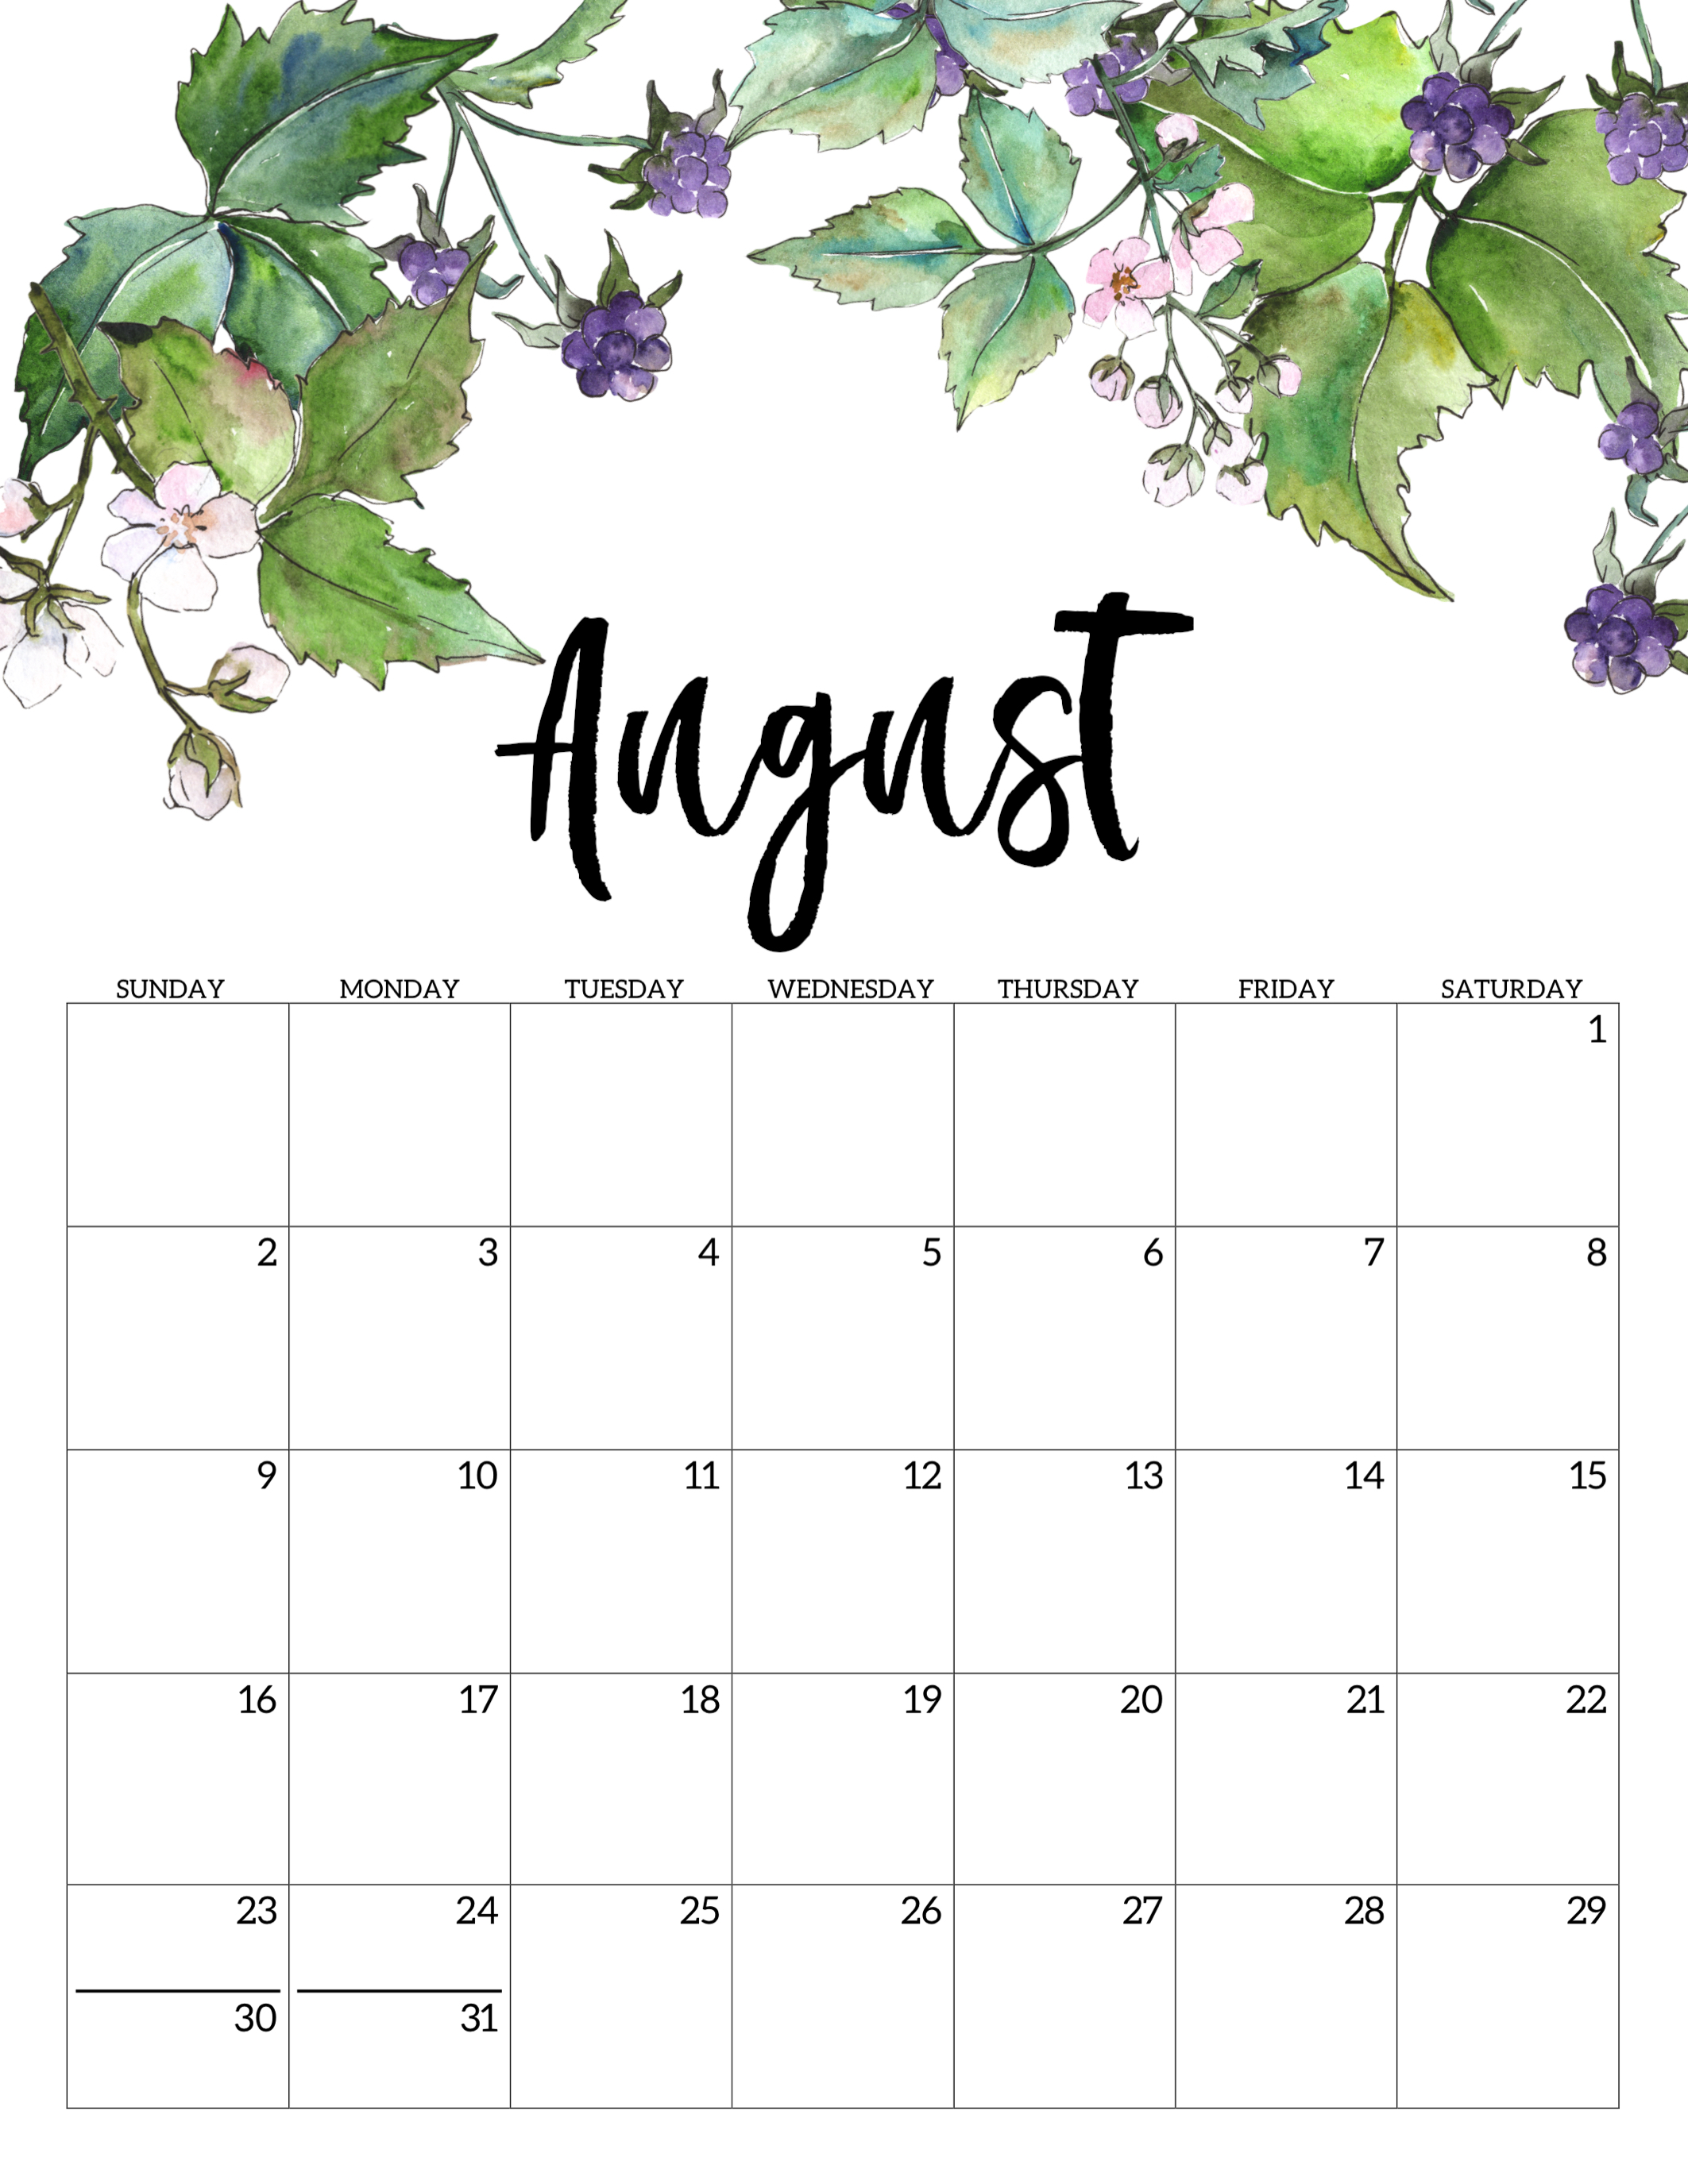 graphic regarding Free Printable 2020 Calendar identify 2020 Totally free Printable Calendar - Floral - Paper Path Design and style